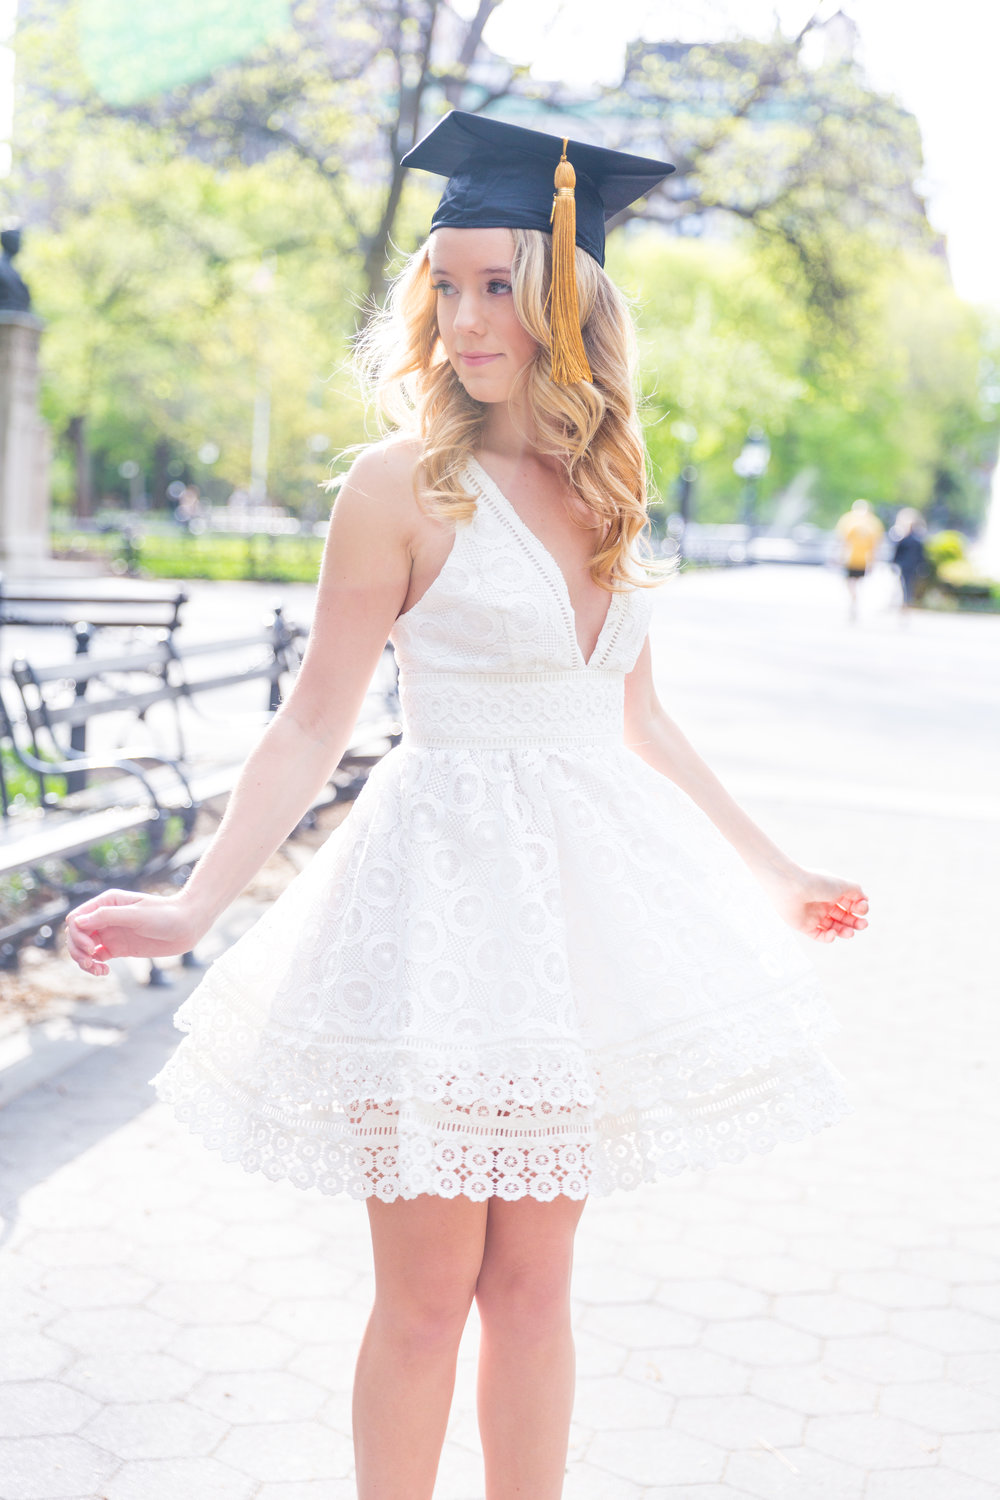 White NYU College Graduation Dress Spring NYC-11.jpg